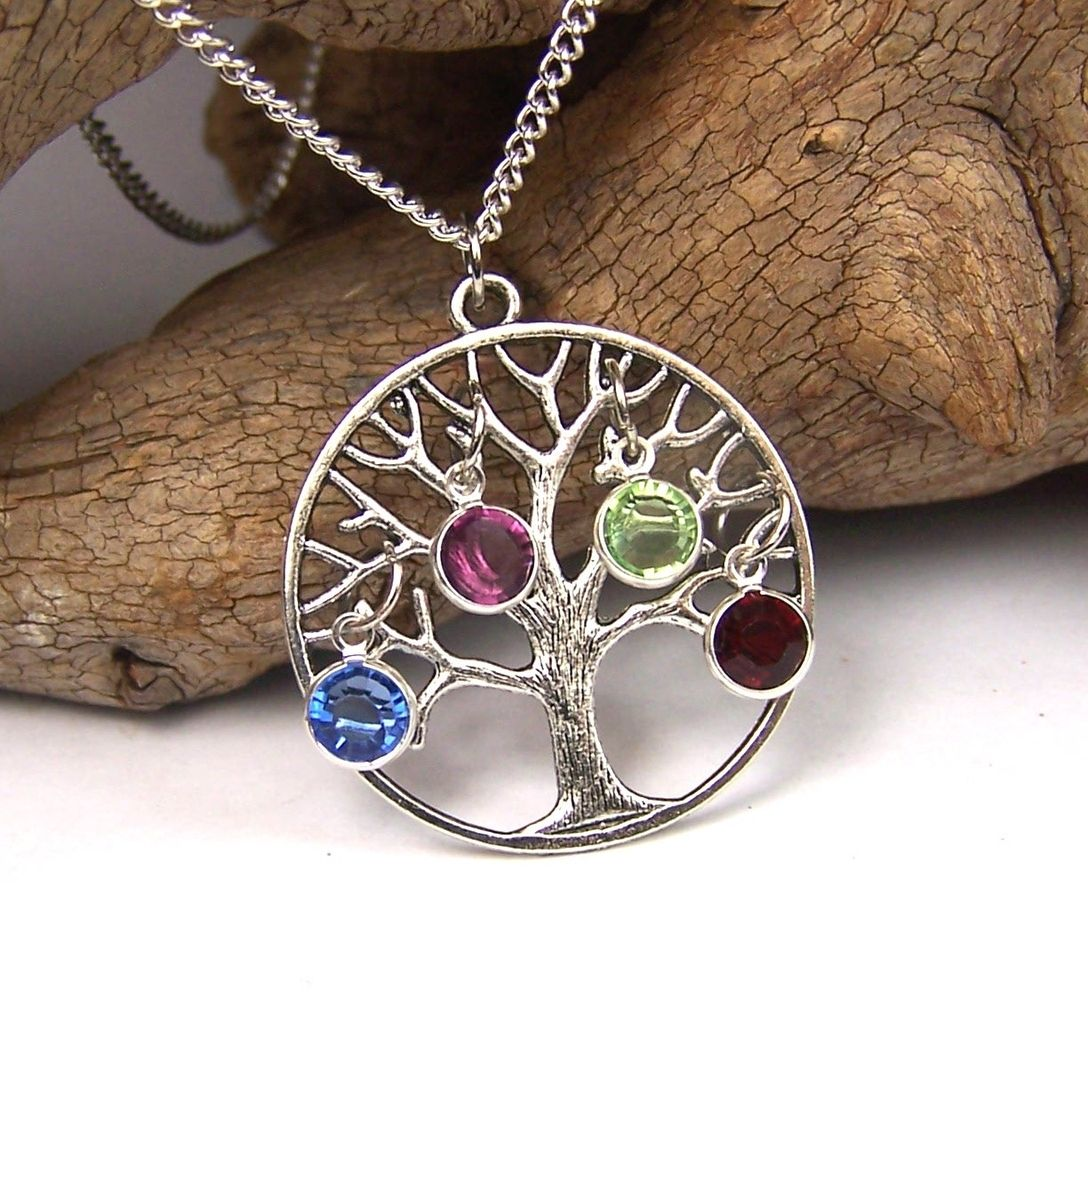 Buy hand crafted personalized family tree necklace pendant with custom made personalized family tree necklace pendant with birthstones swarovski crystals aloadofball Images